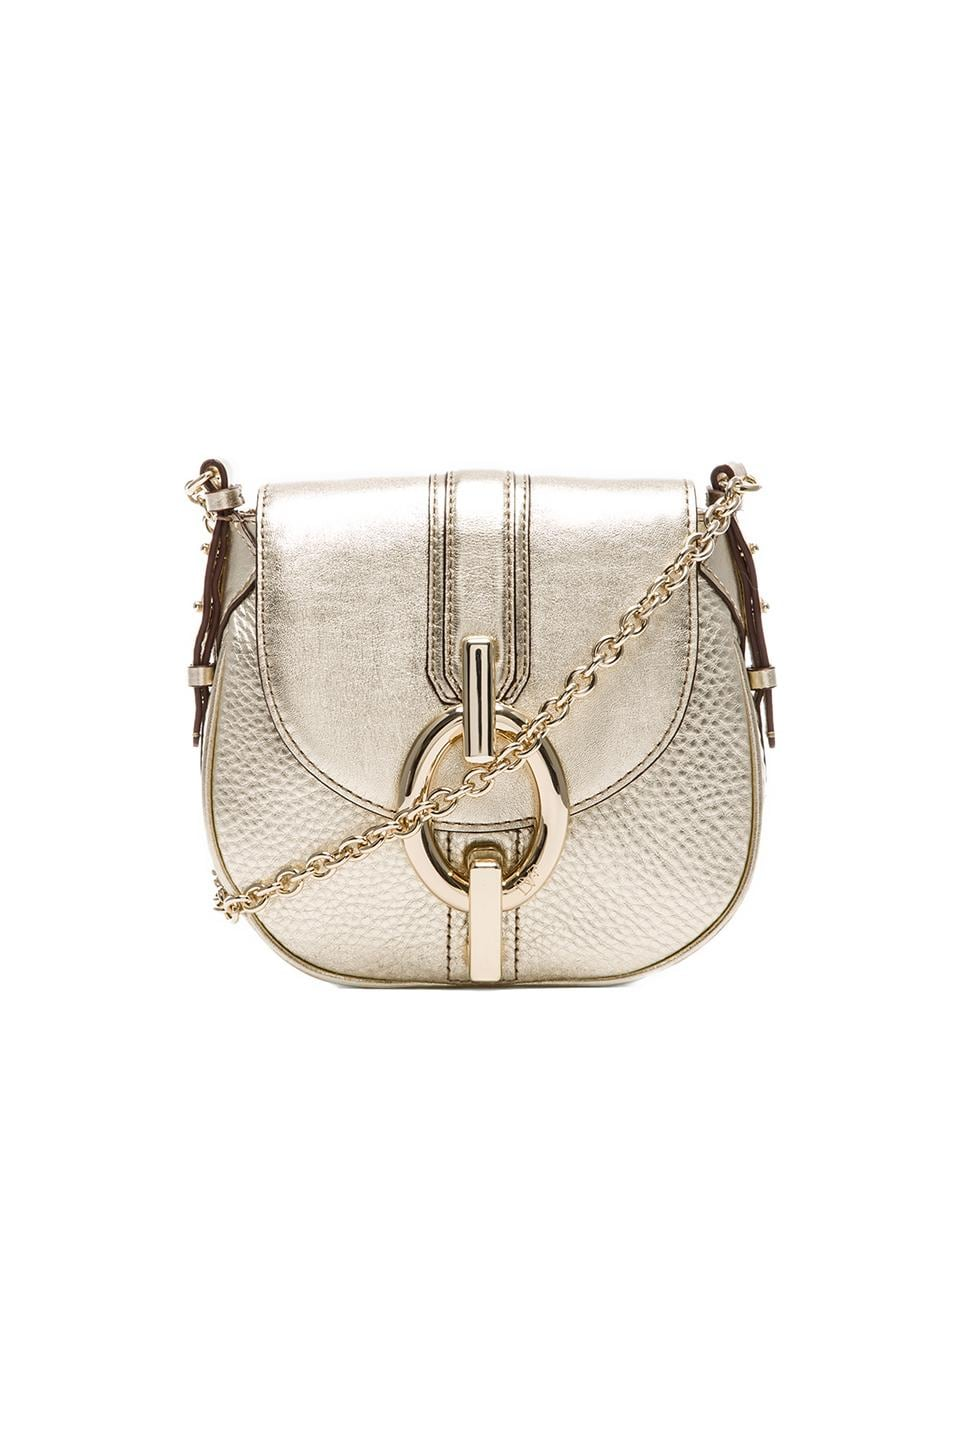 Diane von Furstenberg Sutra Mini Metallic Crossbody in Light Gold